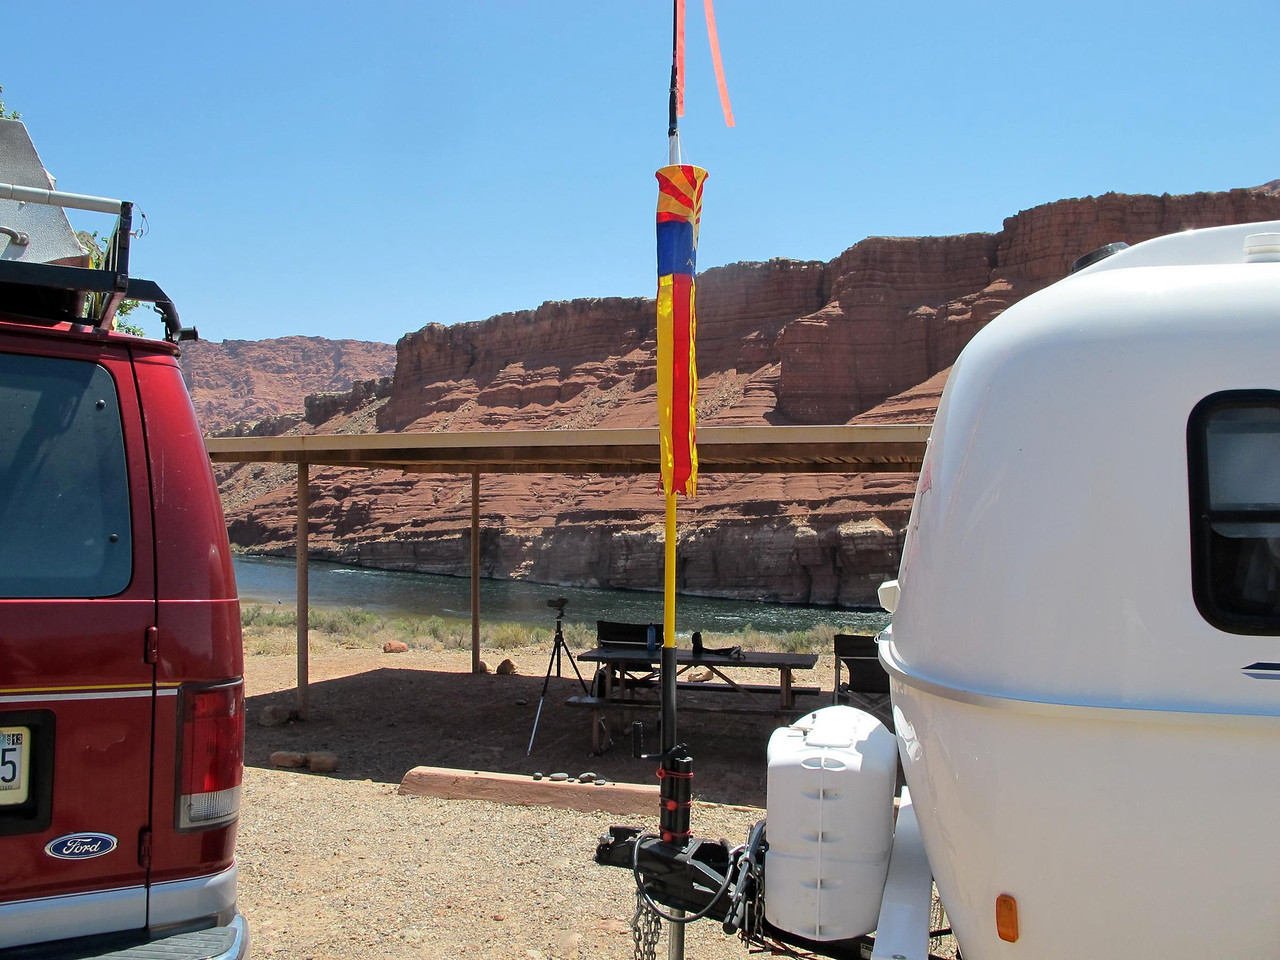 Konrad & Lynn's ramada and Arizona windsock